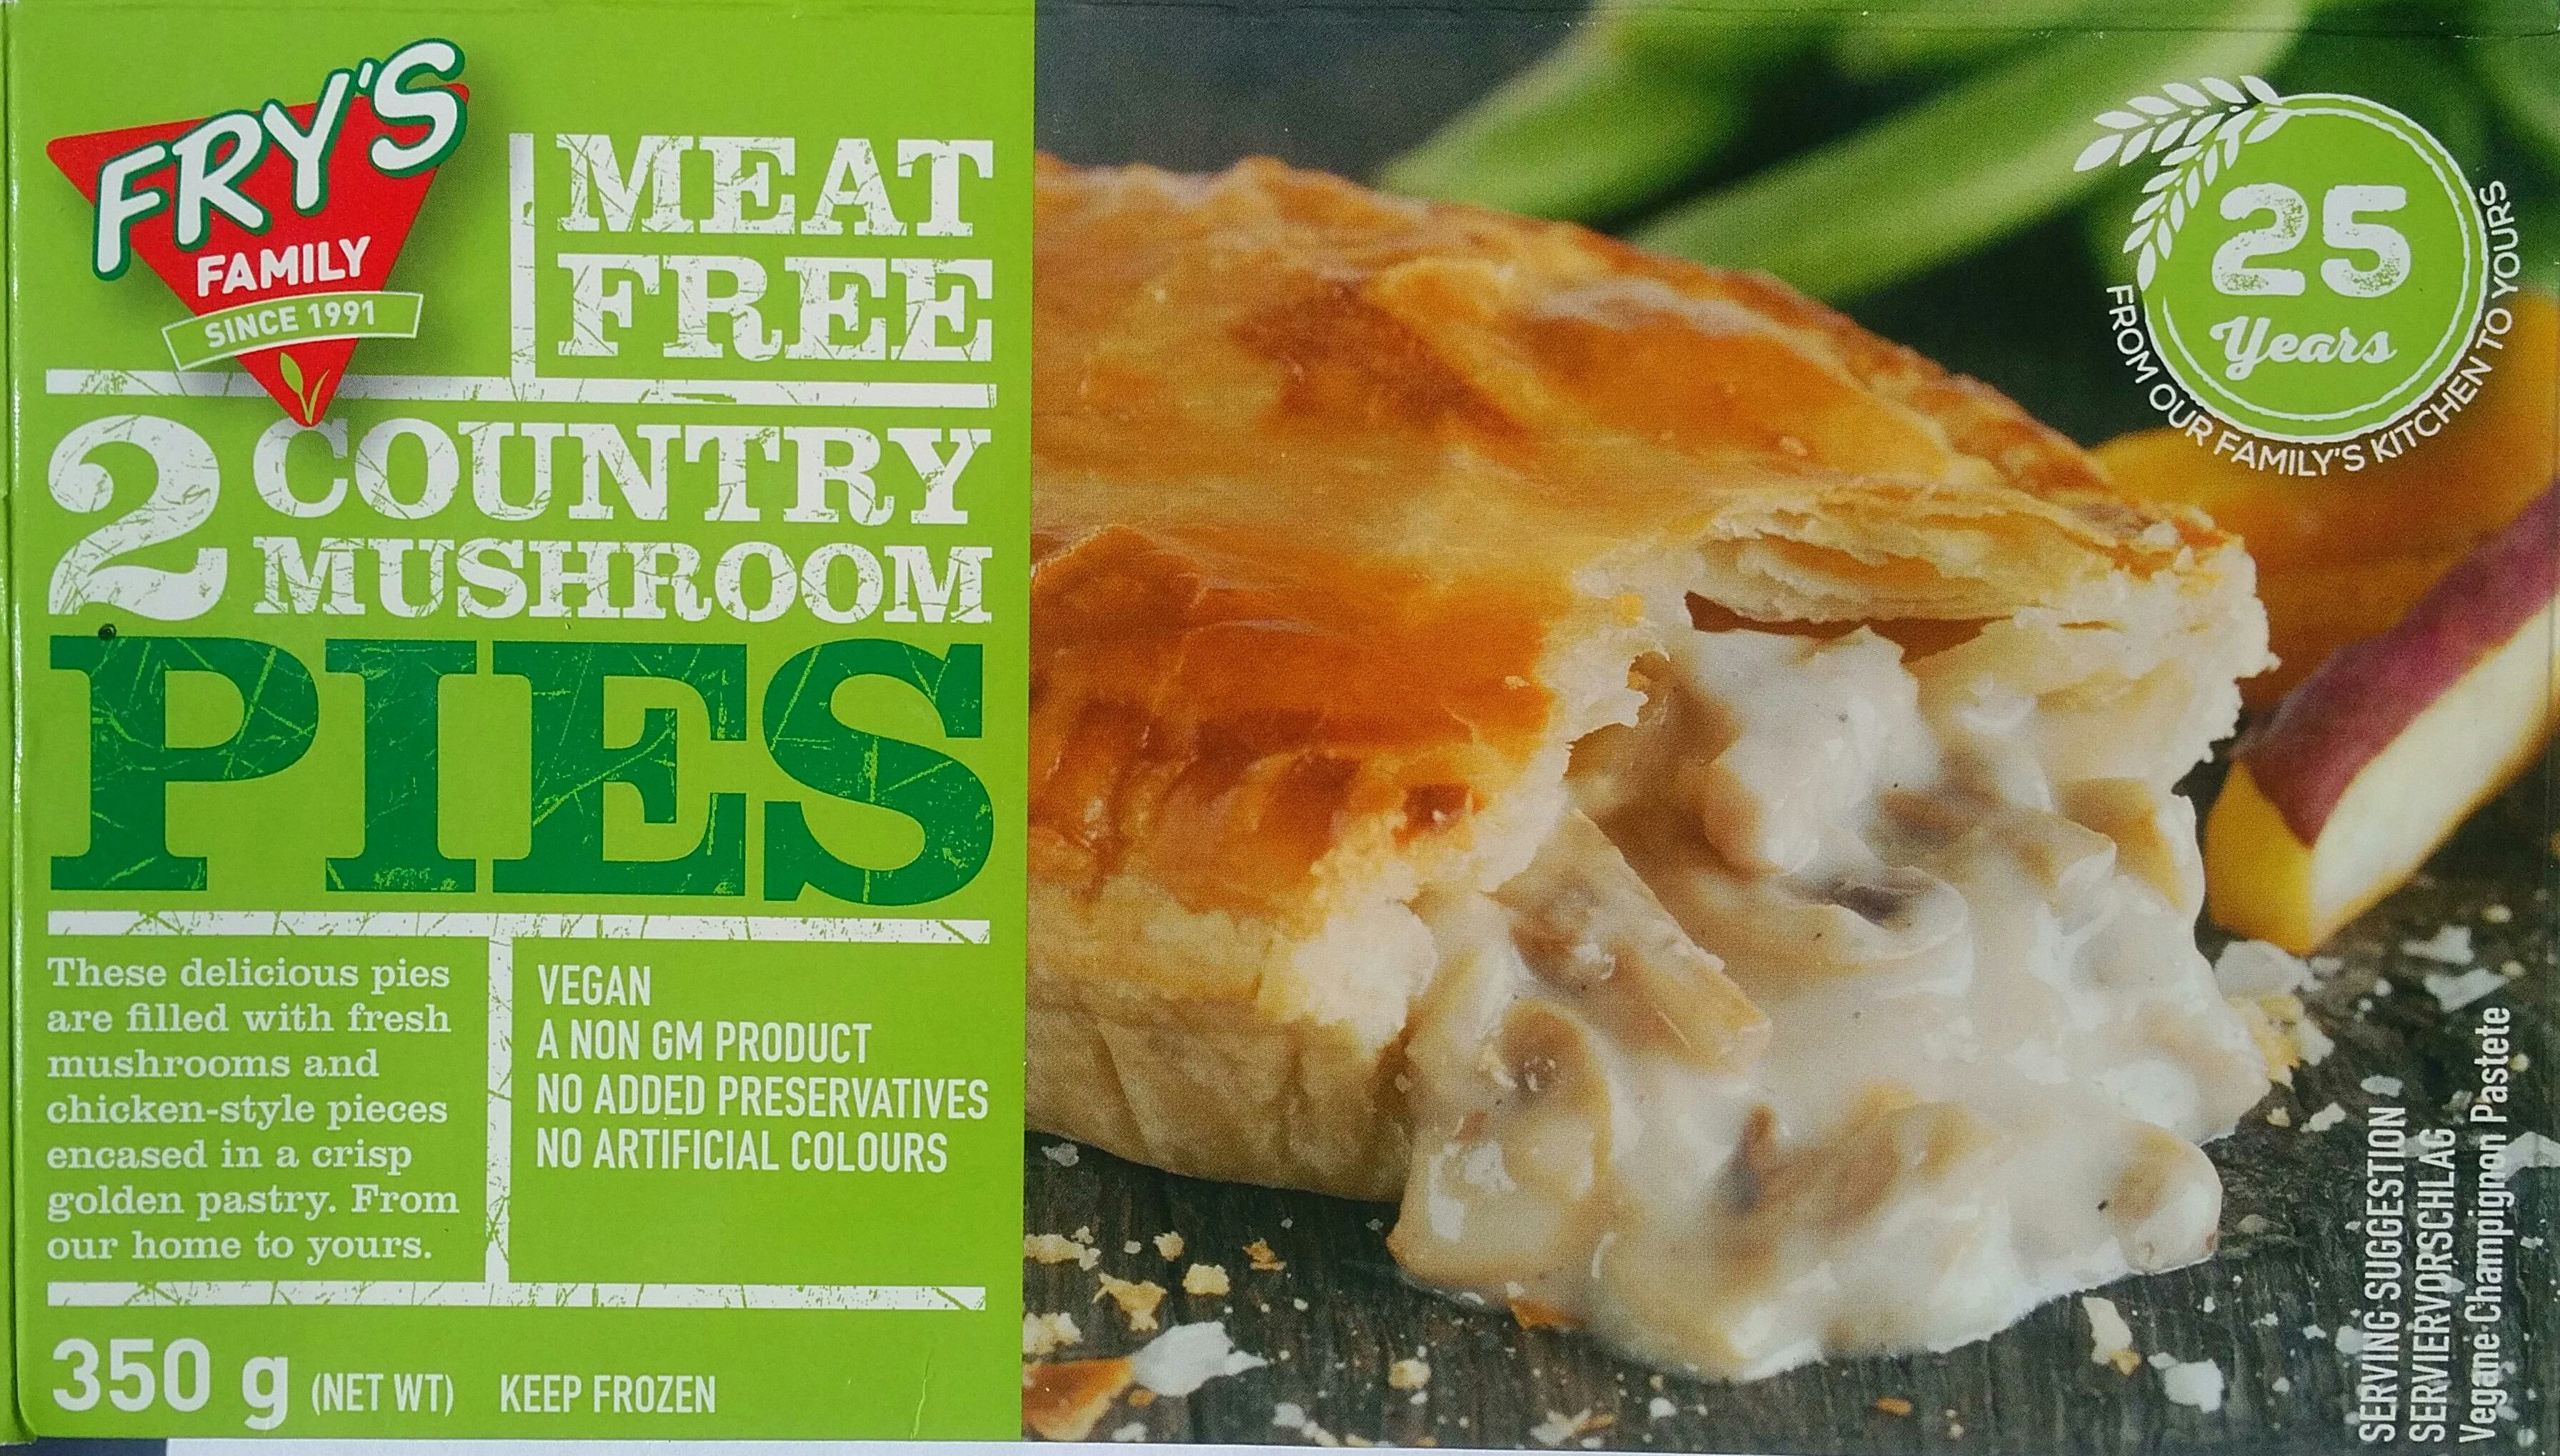 Fry's Meet Free Pies - Product